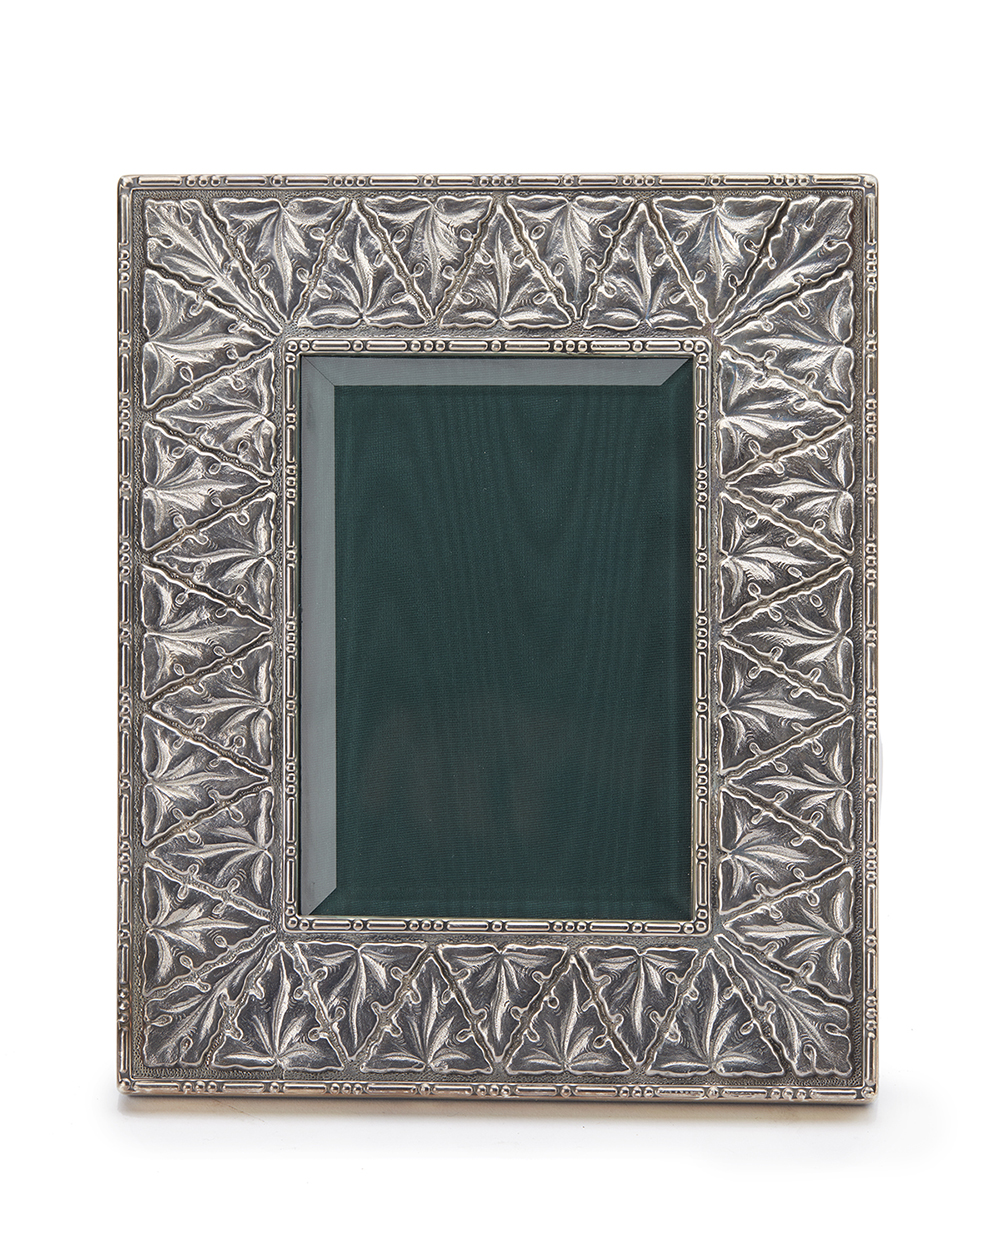 Lot 1231 - A Buccallati sterling silver picture frame